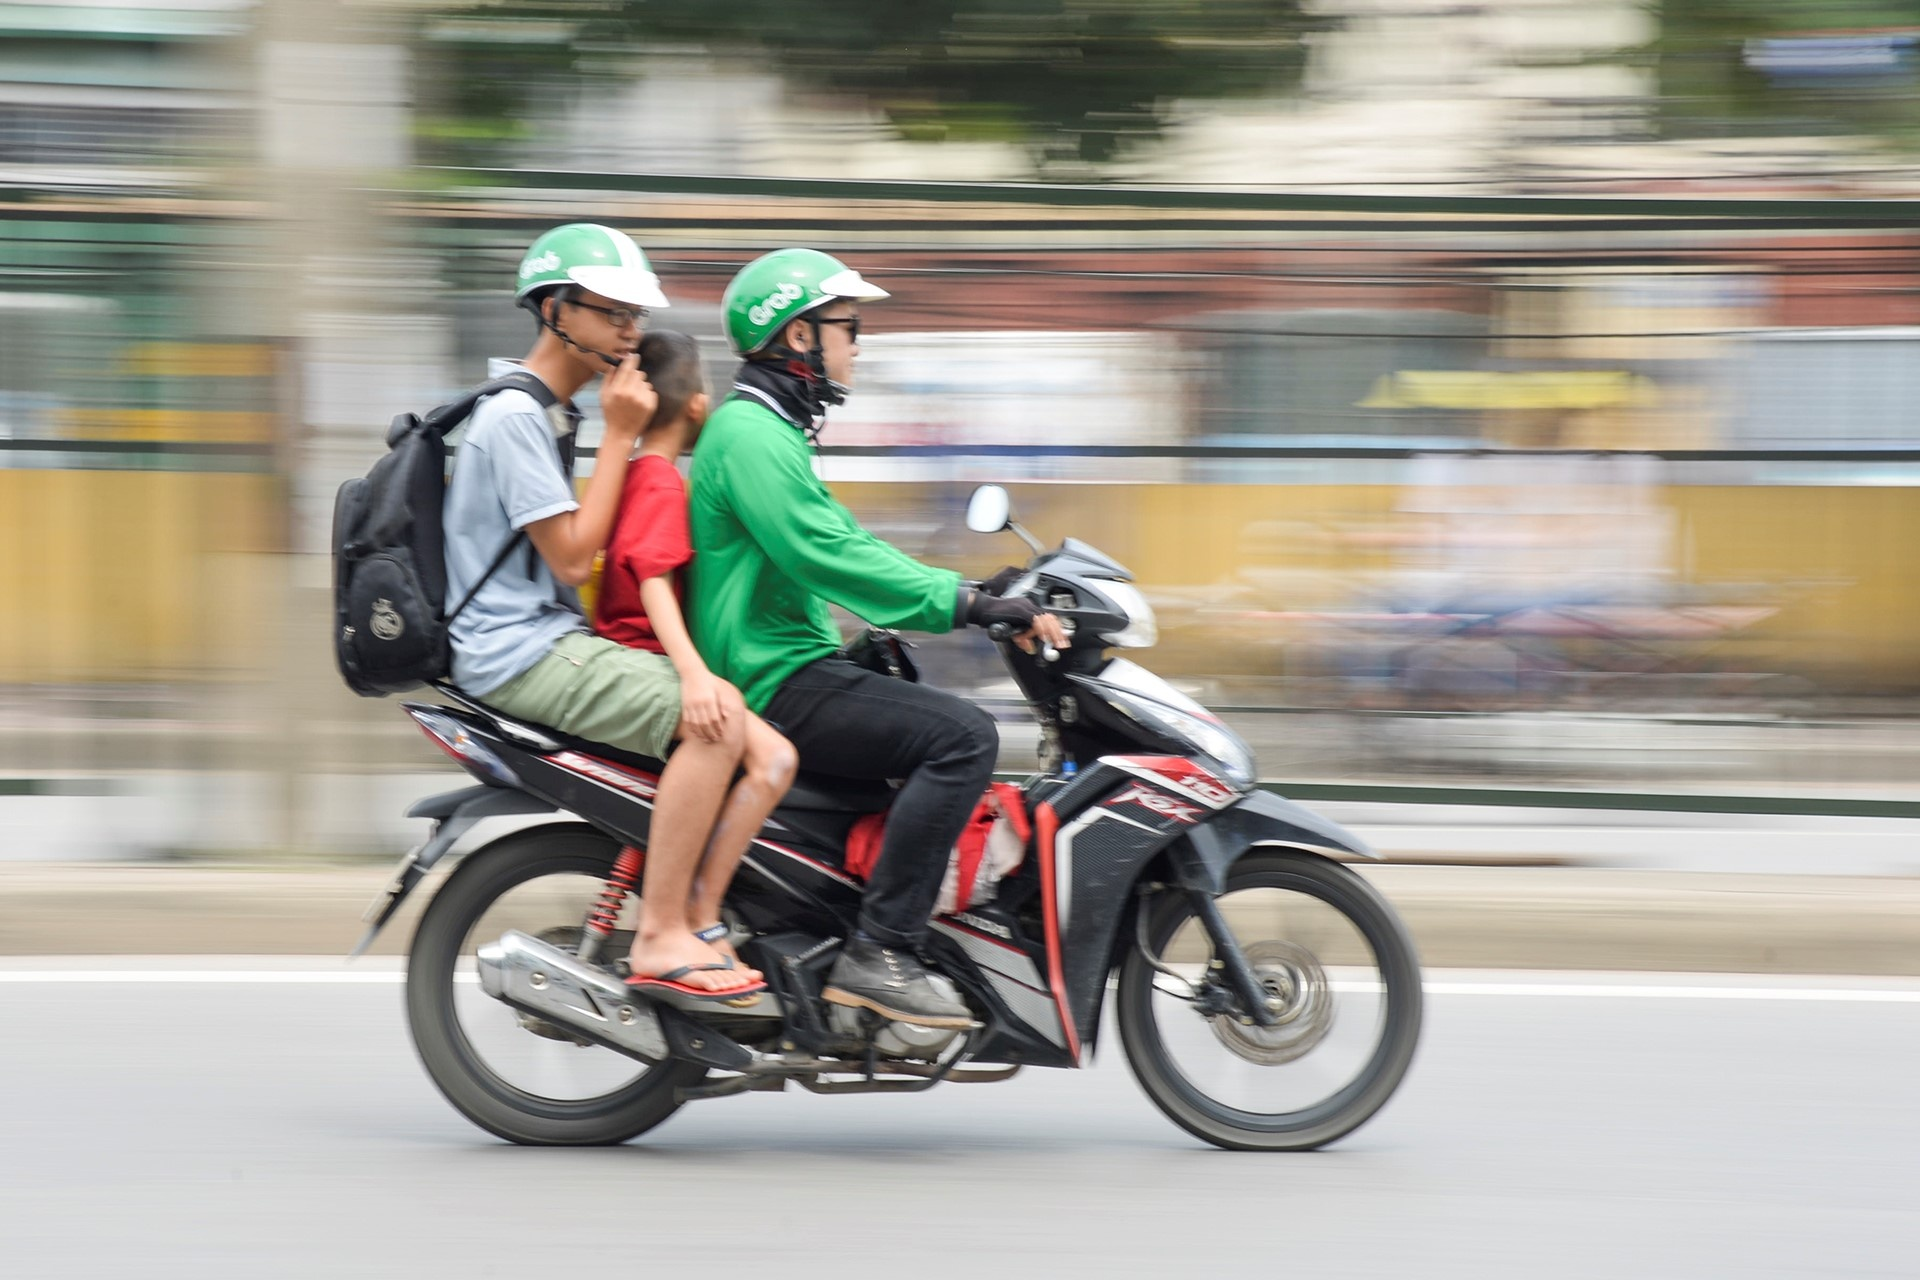 Uber, Grab voi cuoc chien gia cuoc xe om hinh anh 8